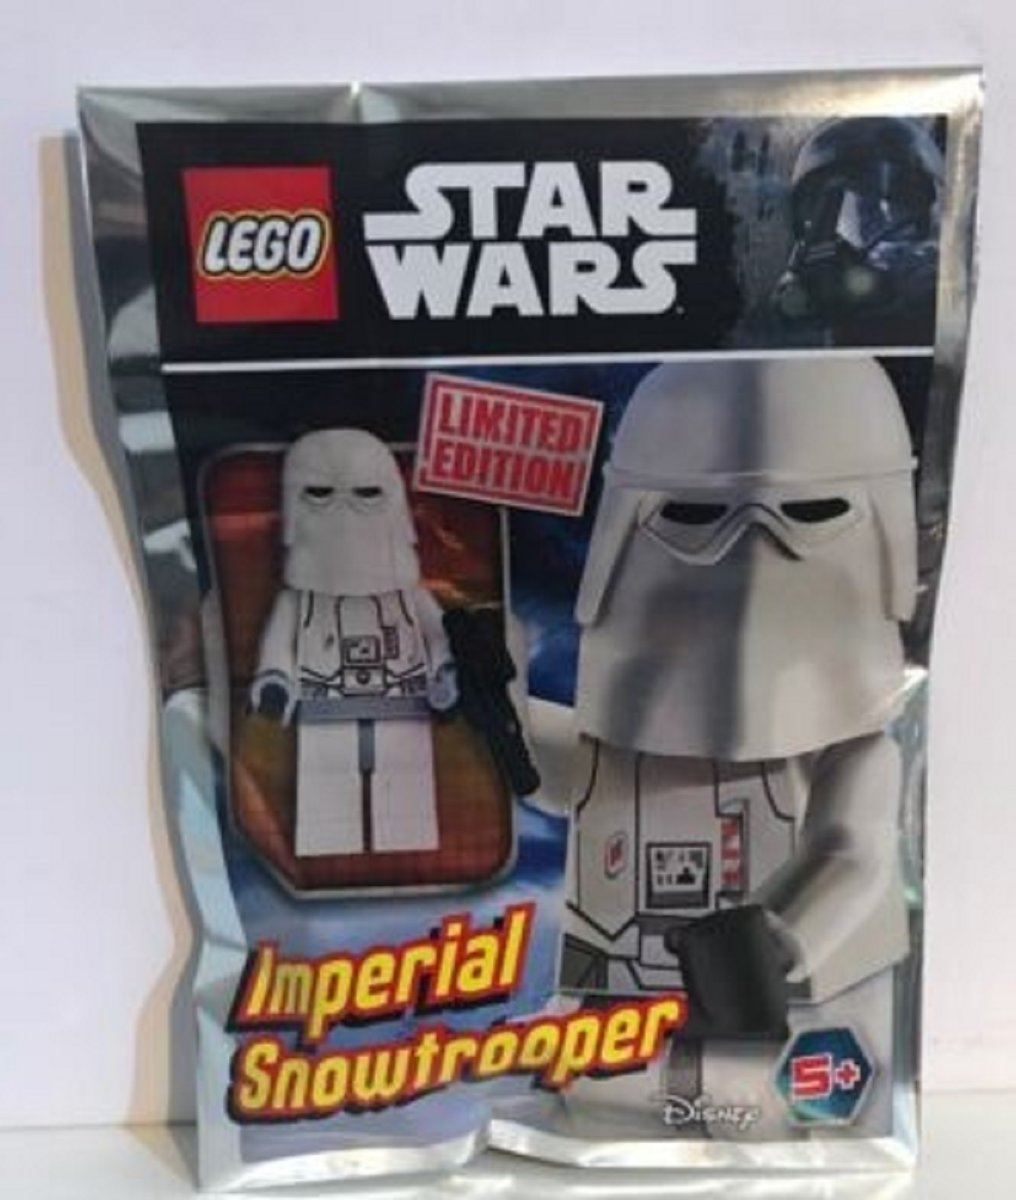 Lego Star Wars - Imperial Snowtrooper minifigure